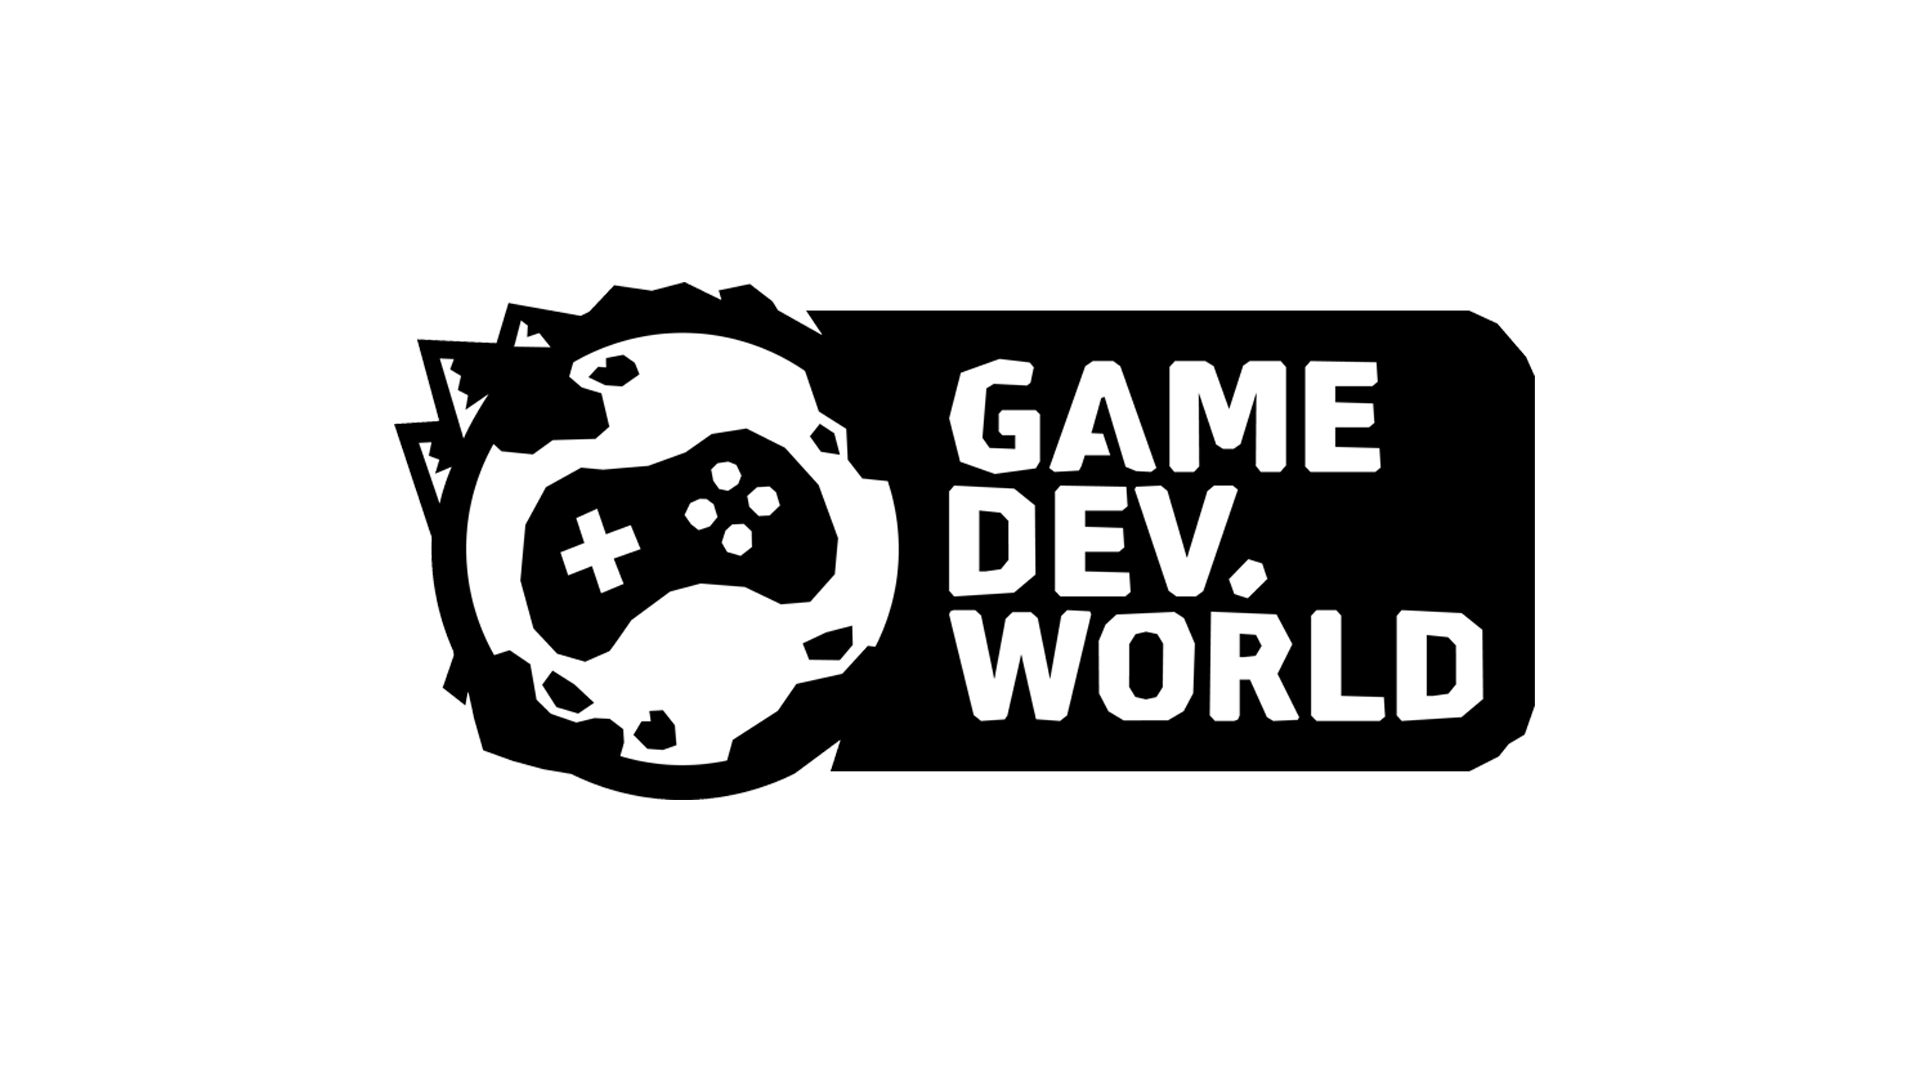 Gamedev.world starts today!